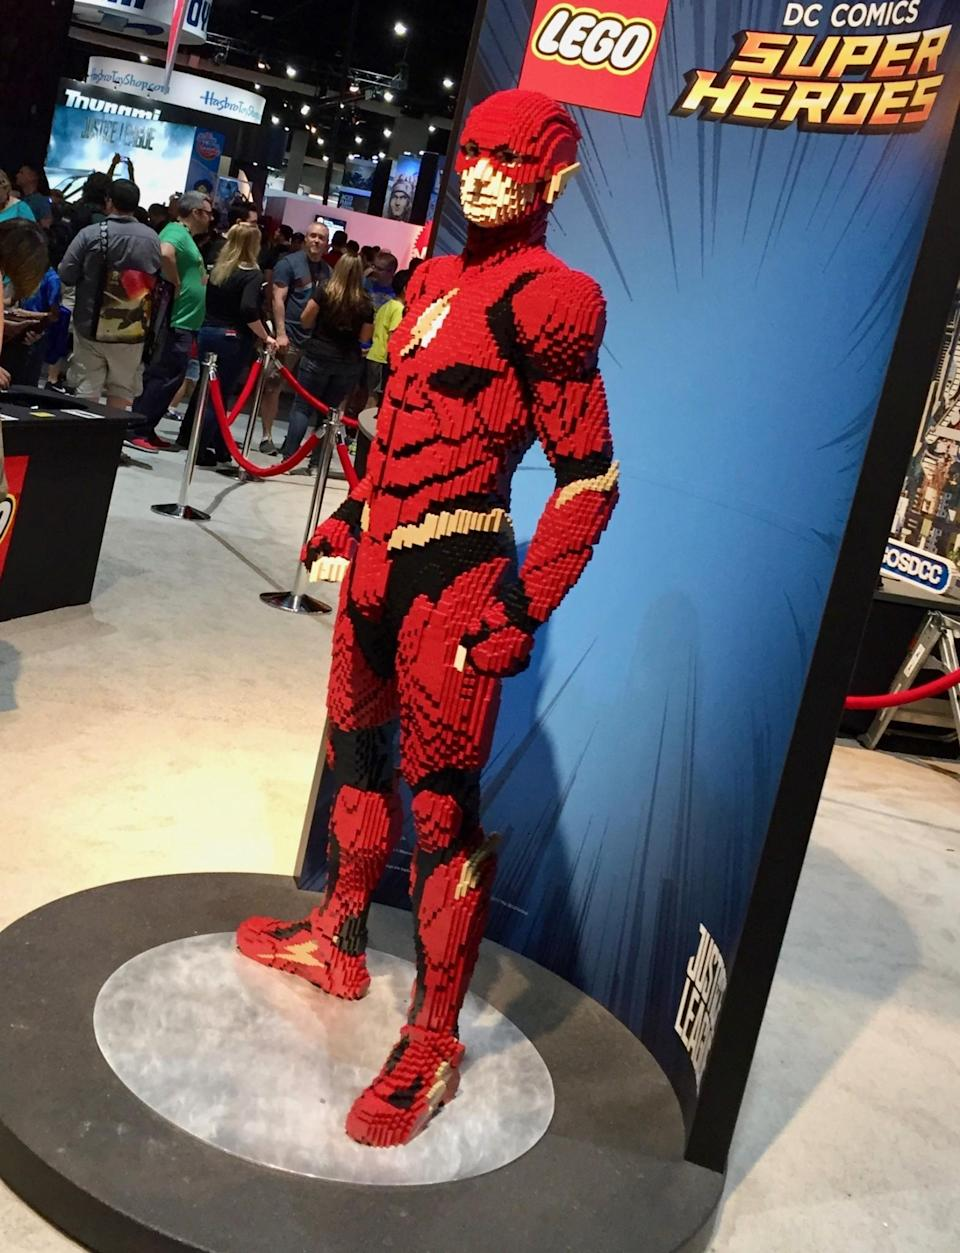 <p>Next door to the DC booth is Lego, which has this life-sized version of the hero on display. (Photo: Marcus Errico/Yahoo Movies) </p>